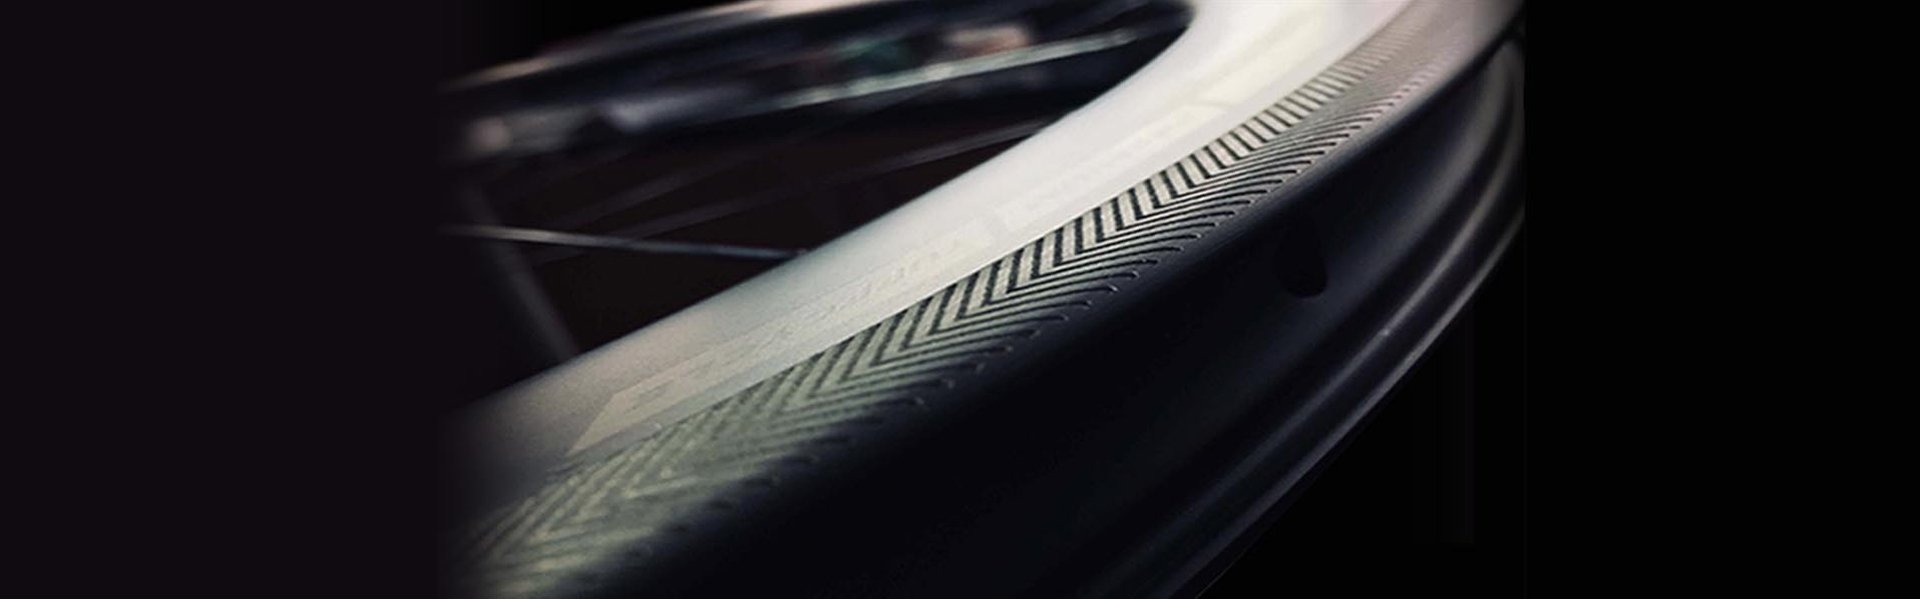 Carbon Wheelset (@carbonwheelset) Cover Image